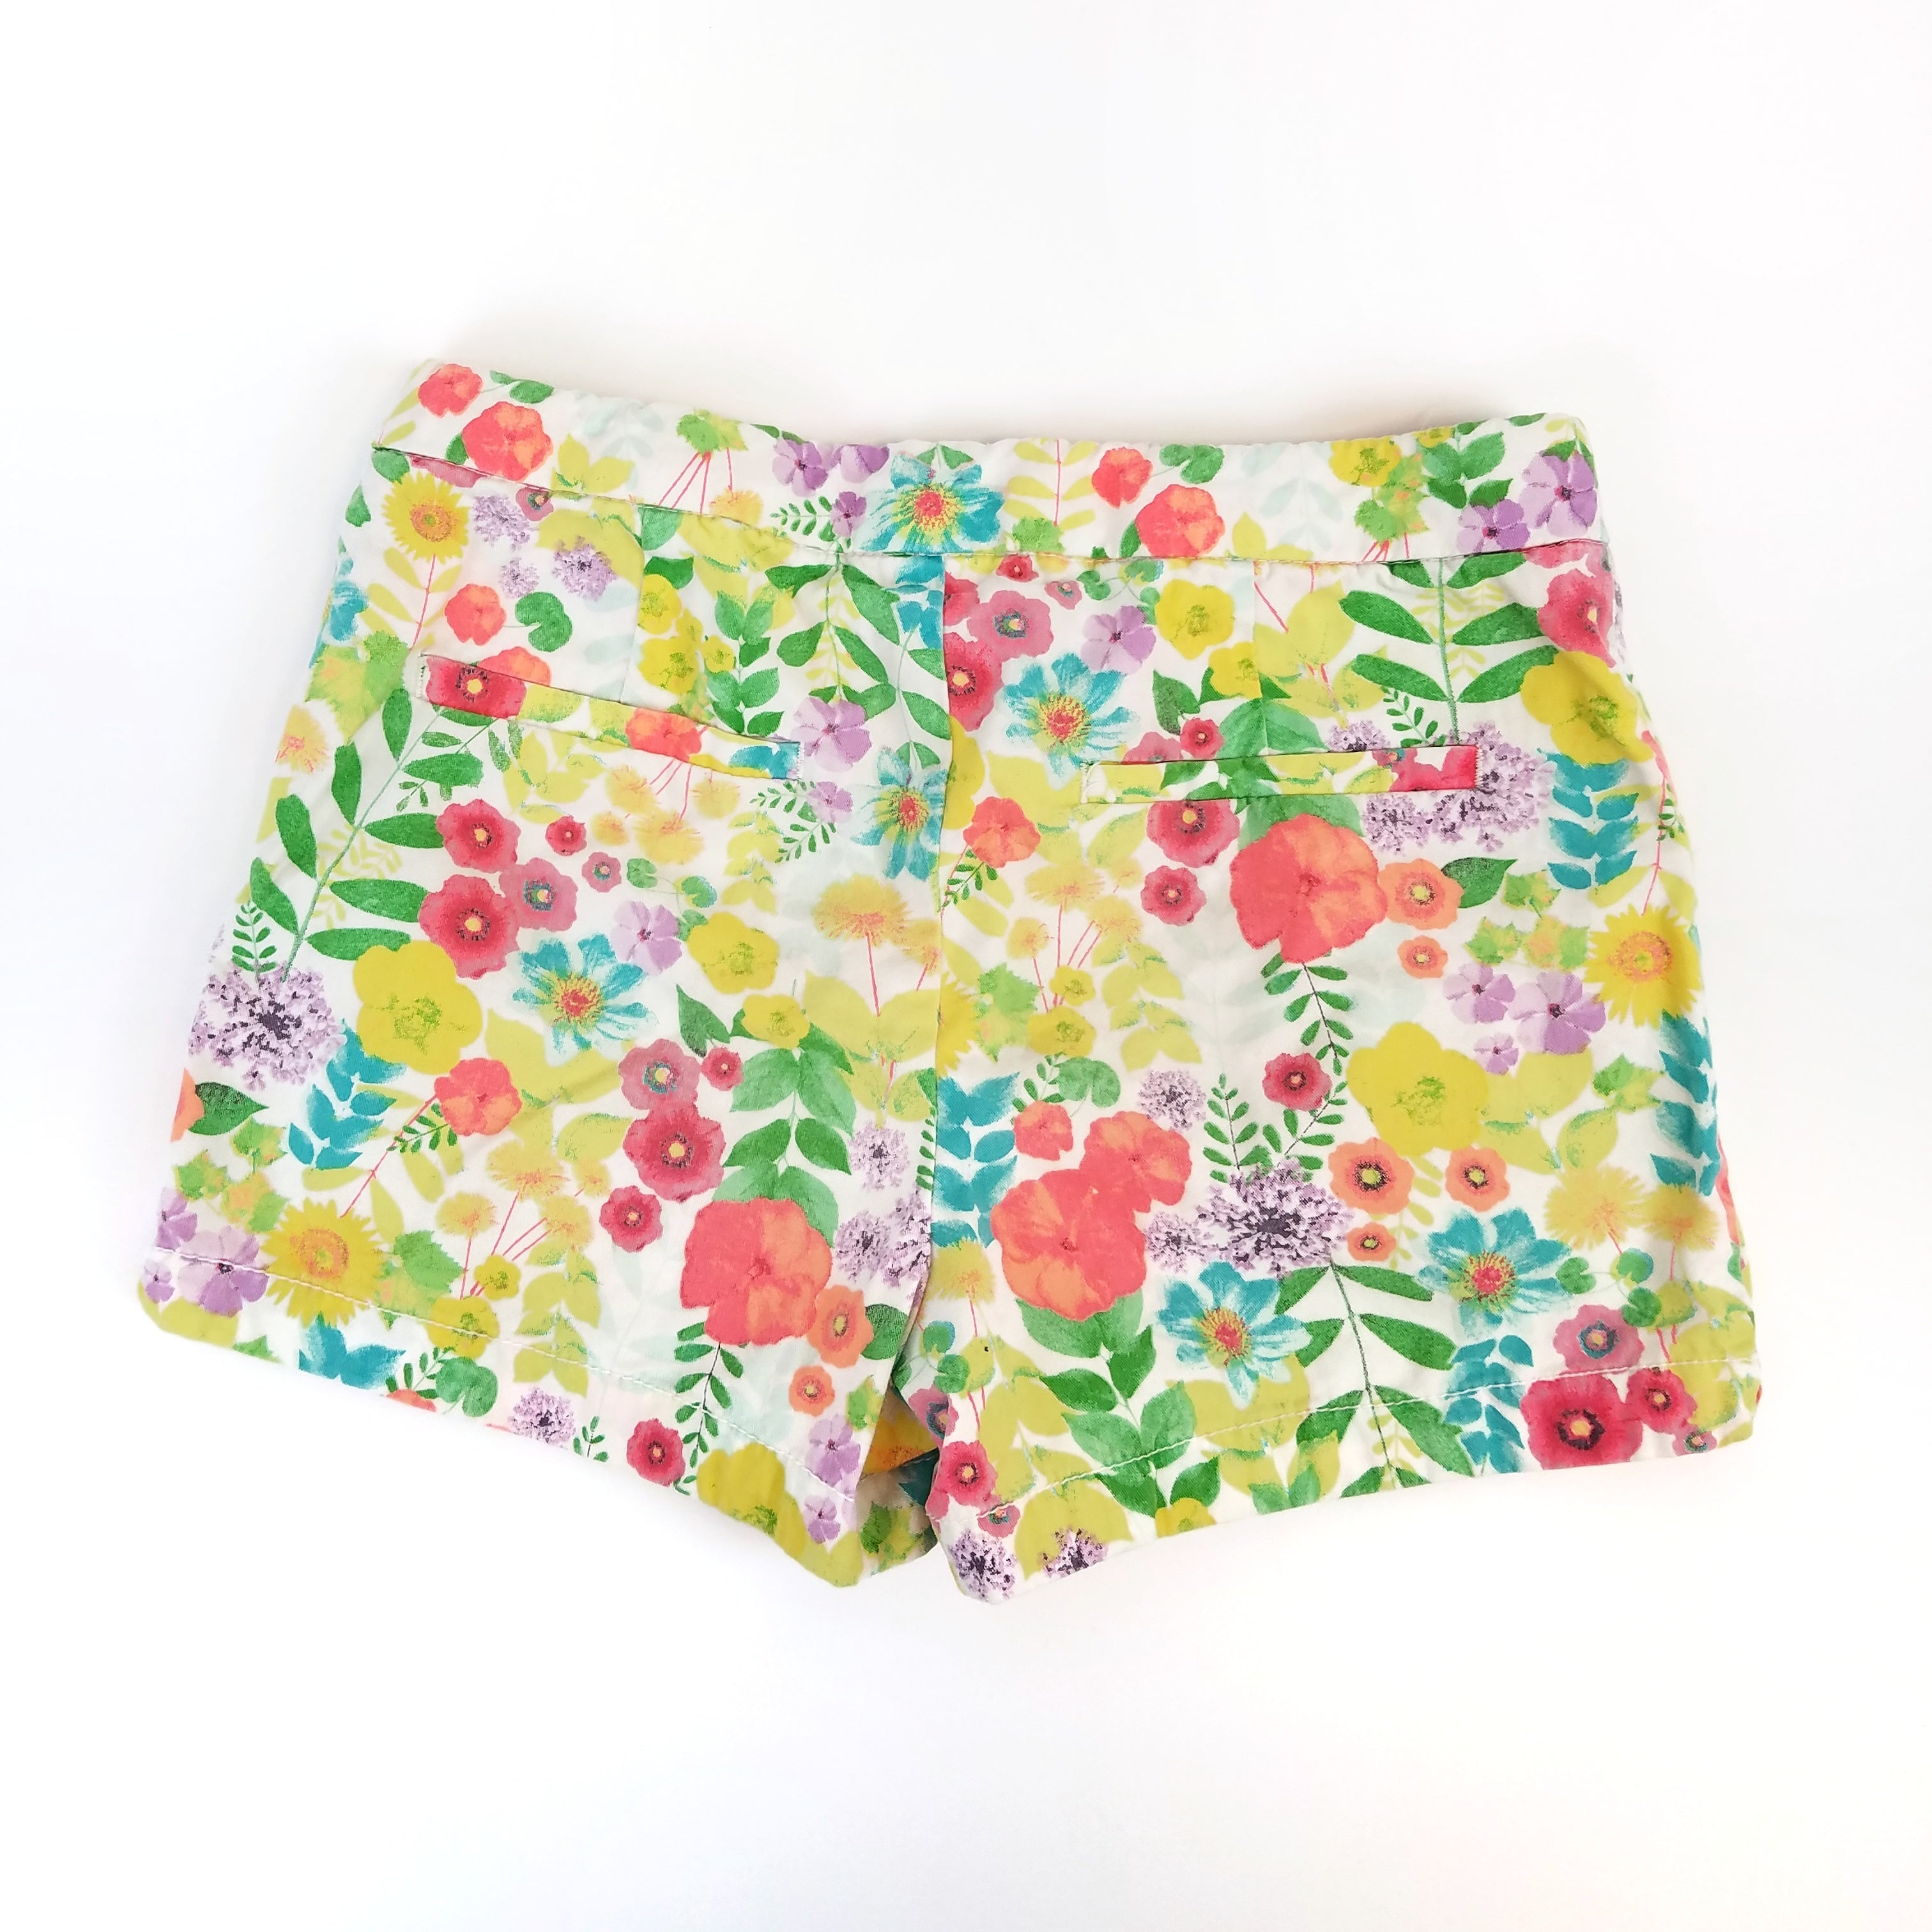 6/6x Snappy Floral Shorts - Wild Child